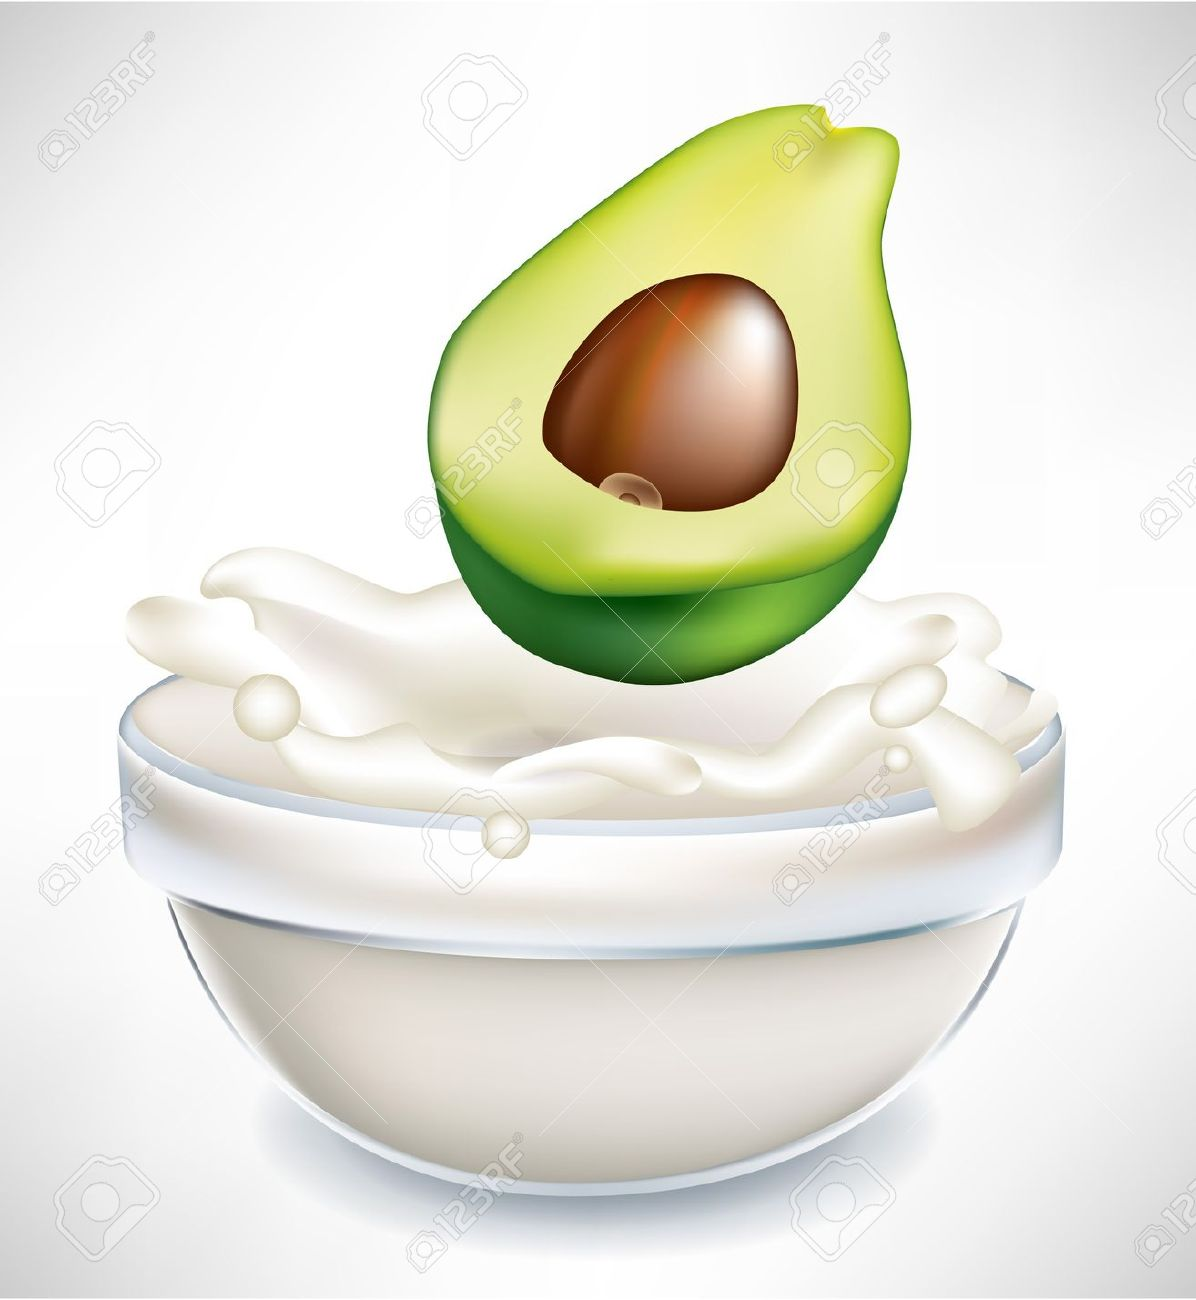 Avocado And Creamy Milk Splash In Transparent Bowl Isolated On.